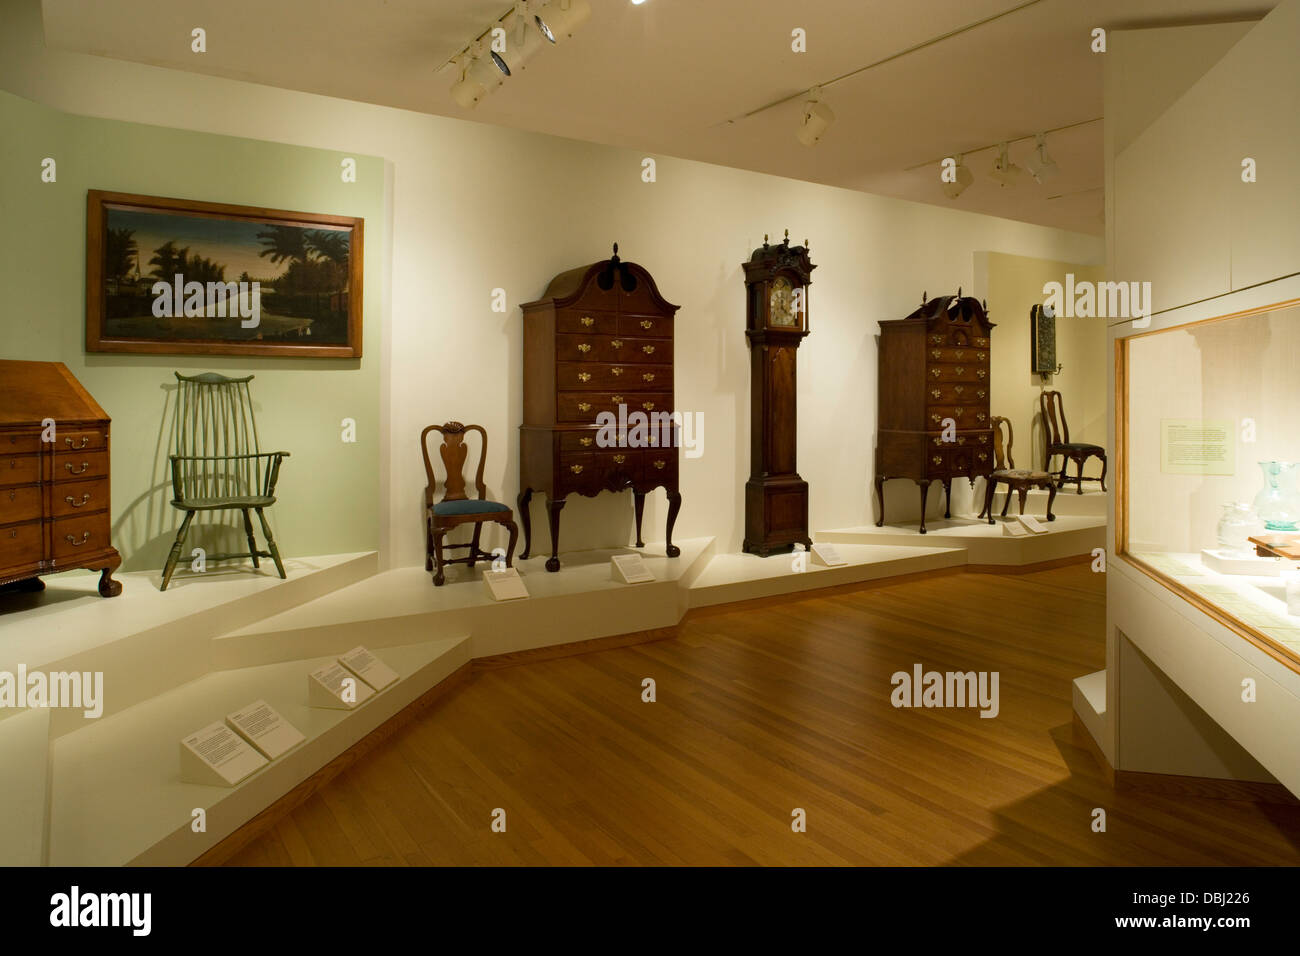 Amazing Stock Photo   Worcester Art Museum   Early American Furniture Exhibit